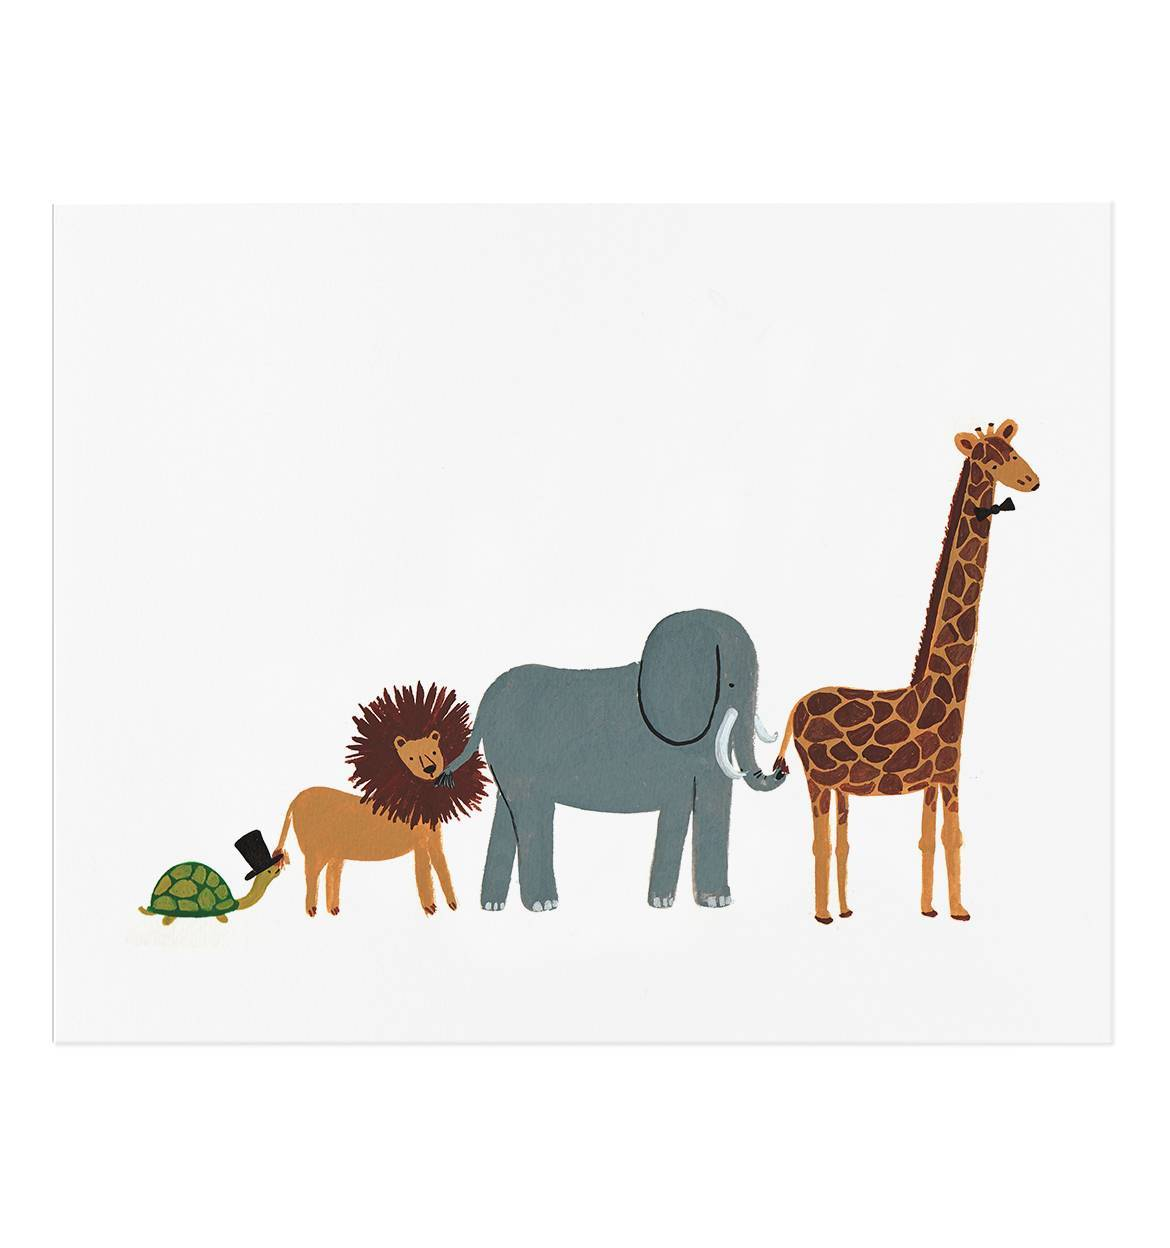 Animal Party Parade Illustrated 8x10 Art Print by Rifle Paper Co.